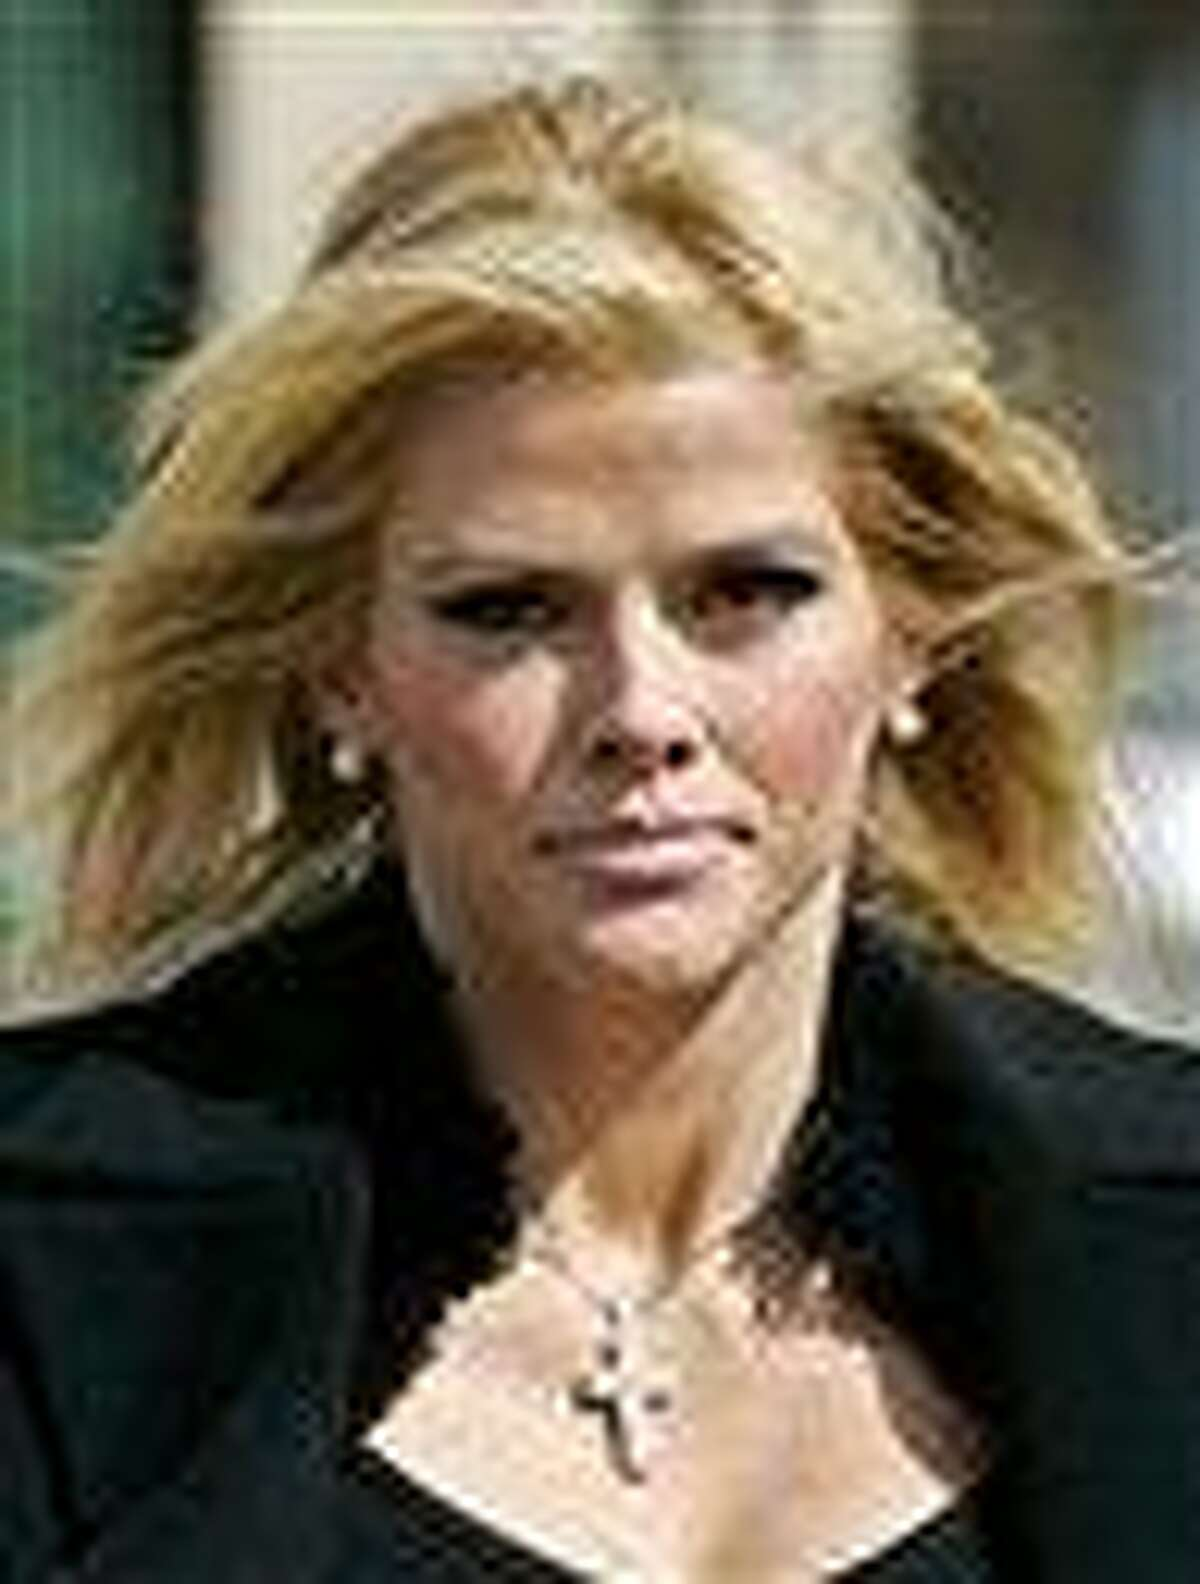 FILE - In this Feb. 28, 2006 file photo, Anna Nicole Smith, leaves the U.S. Supreme Court in Washington. A doctor for Smith says the late Playboy model had chronic pain syndrome that was a challenge to treat because she was addicted to prescription drugs. Dr. Victor Kovner testified for a second day on Wednesday, Aug. 11, 2010 in the Los Angeles trial of two other doctors and Smith's boyfriend. (AP Photo/Manuel Balce Ceneta, File)